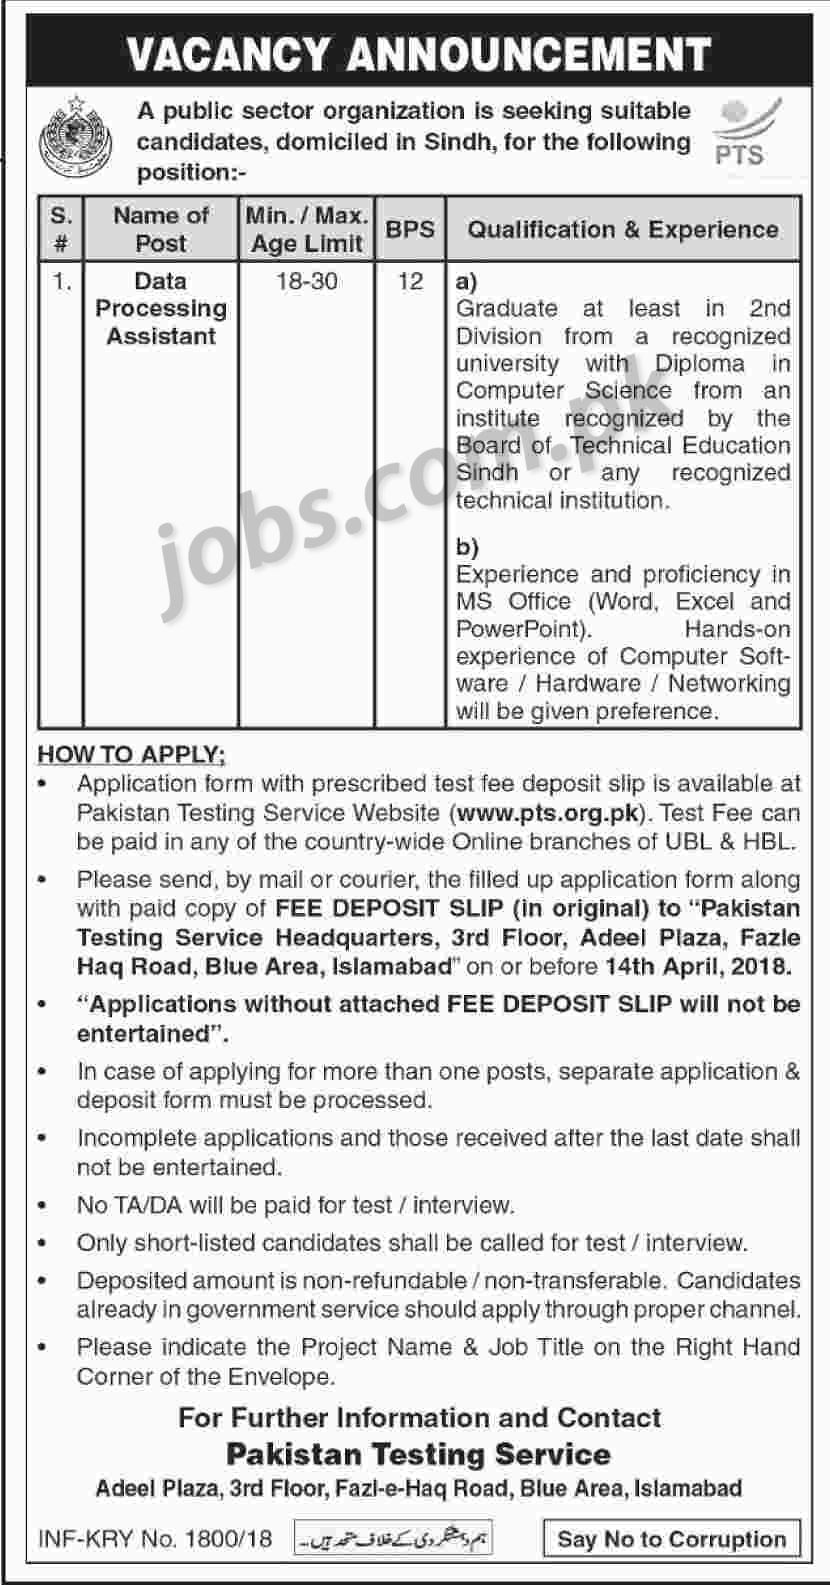 pso-dw-pts Job Application Form Government Of Sindh on medical application form, government articles, government job application cover letter, government training, health care application form, driver application form, doctor application form, government employment, government job vacancies, bank application form, government newsletter, government order form, business application form, government benefits, government events, security application form, government job application process, finance application form, teaching application form, government job openings,